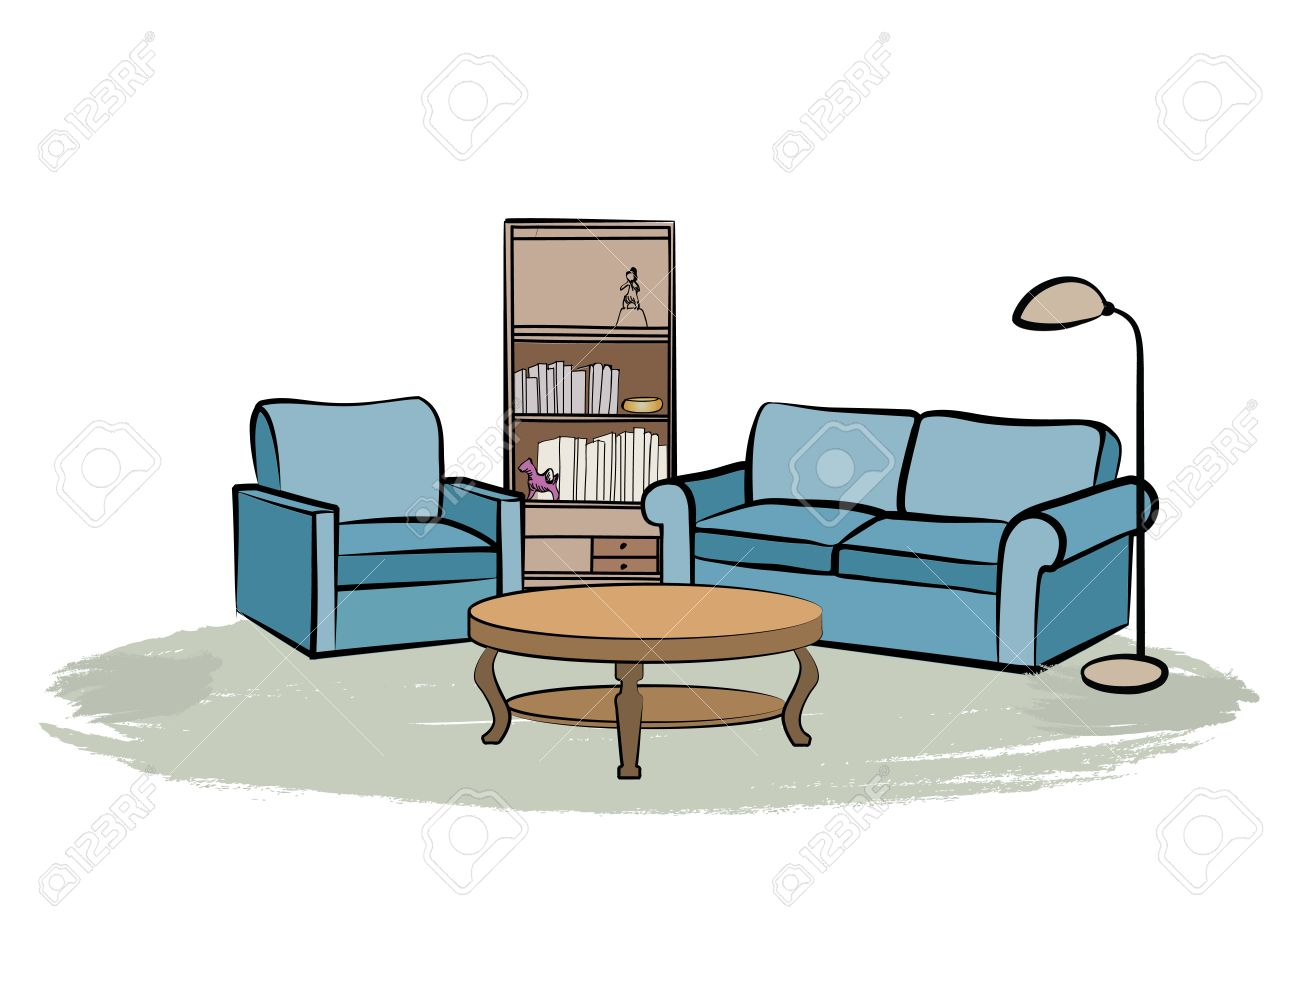 1300x1000 Home Interior Furniture With Sofa, Armchair, Table, Book Shelf